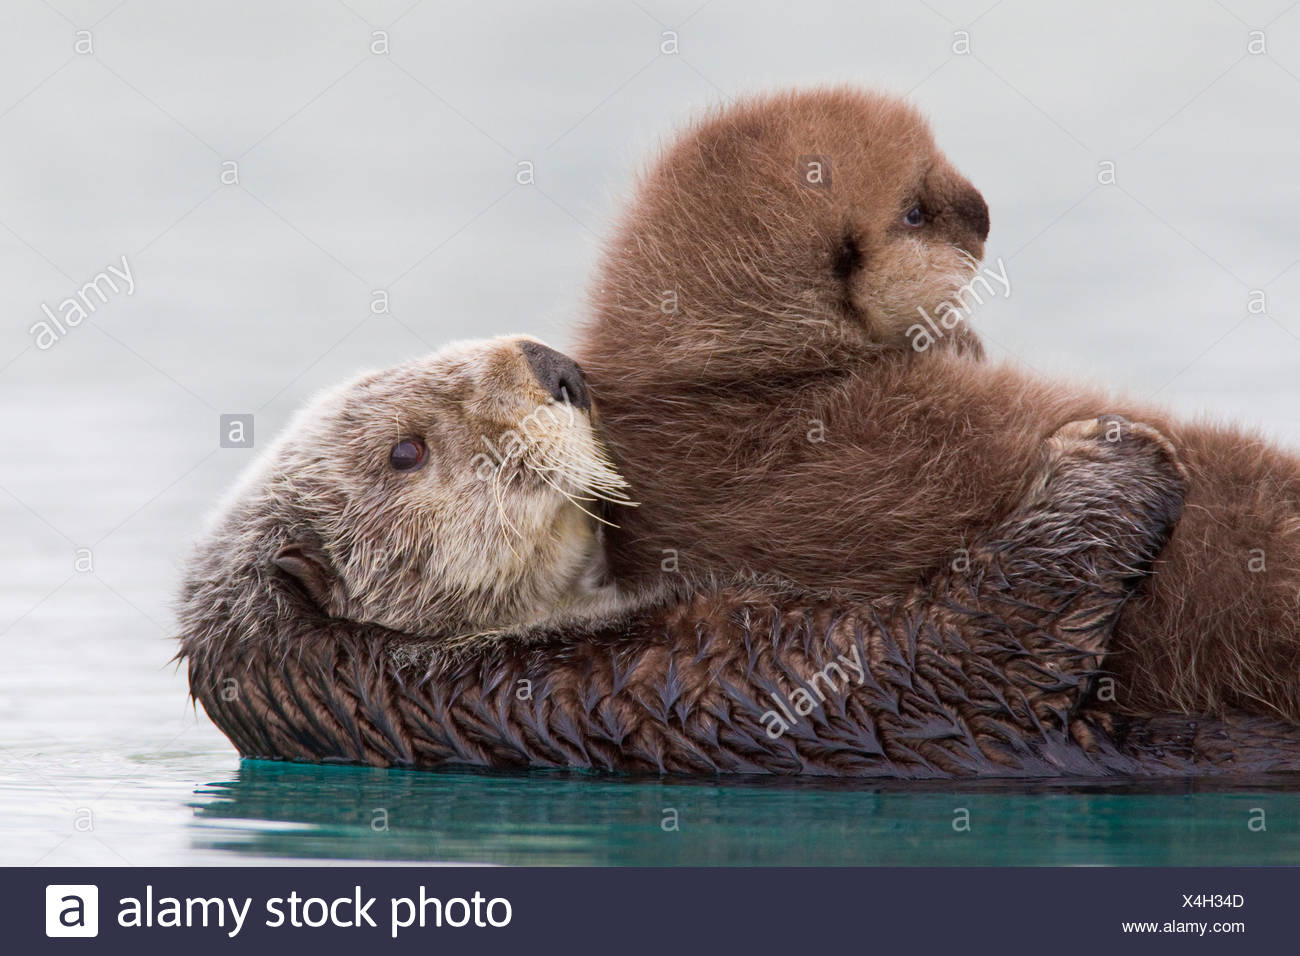 Female Sea otter holding newborn pup out of water, Prince William Sound, Southcentral Alaska, Winter - Stock Image